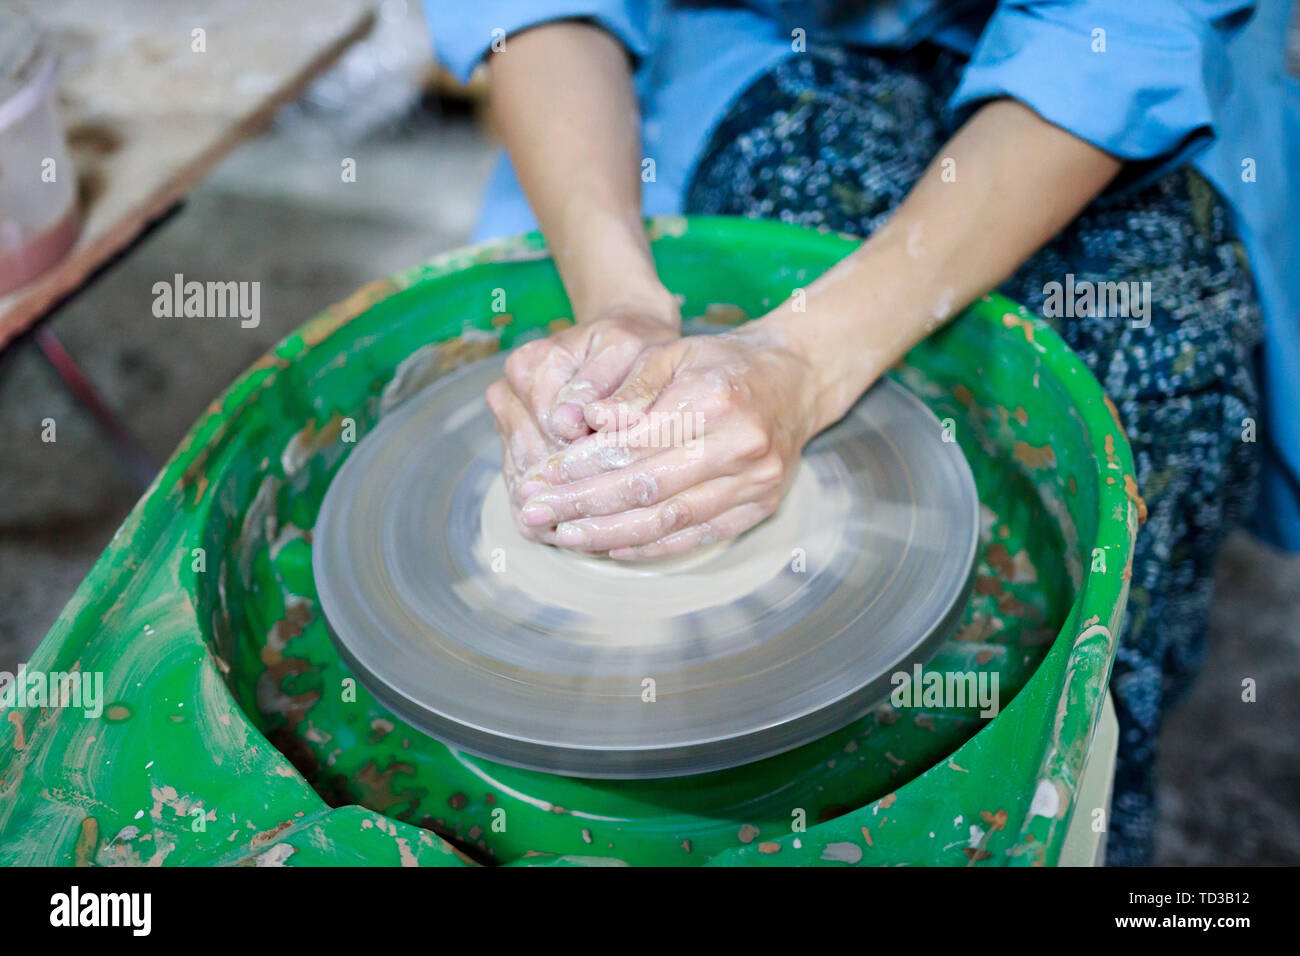 A novice student in the first lesson in pottery tries to make a product from clay on a potter's wheel. reportage. clay centering. Incorrect hand setti Stock Photo